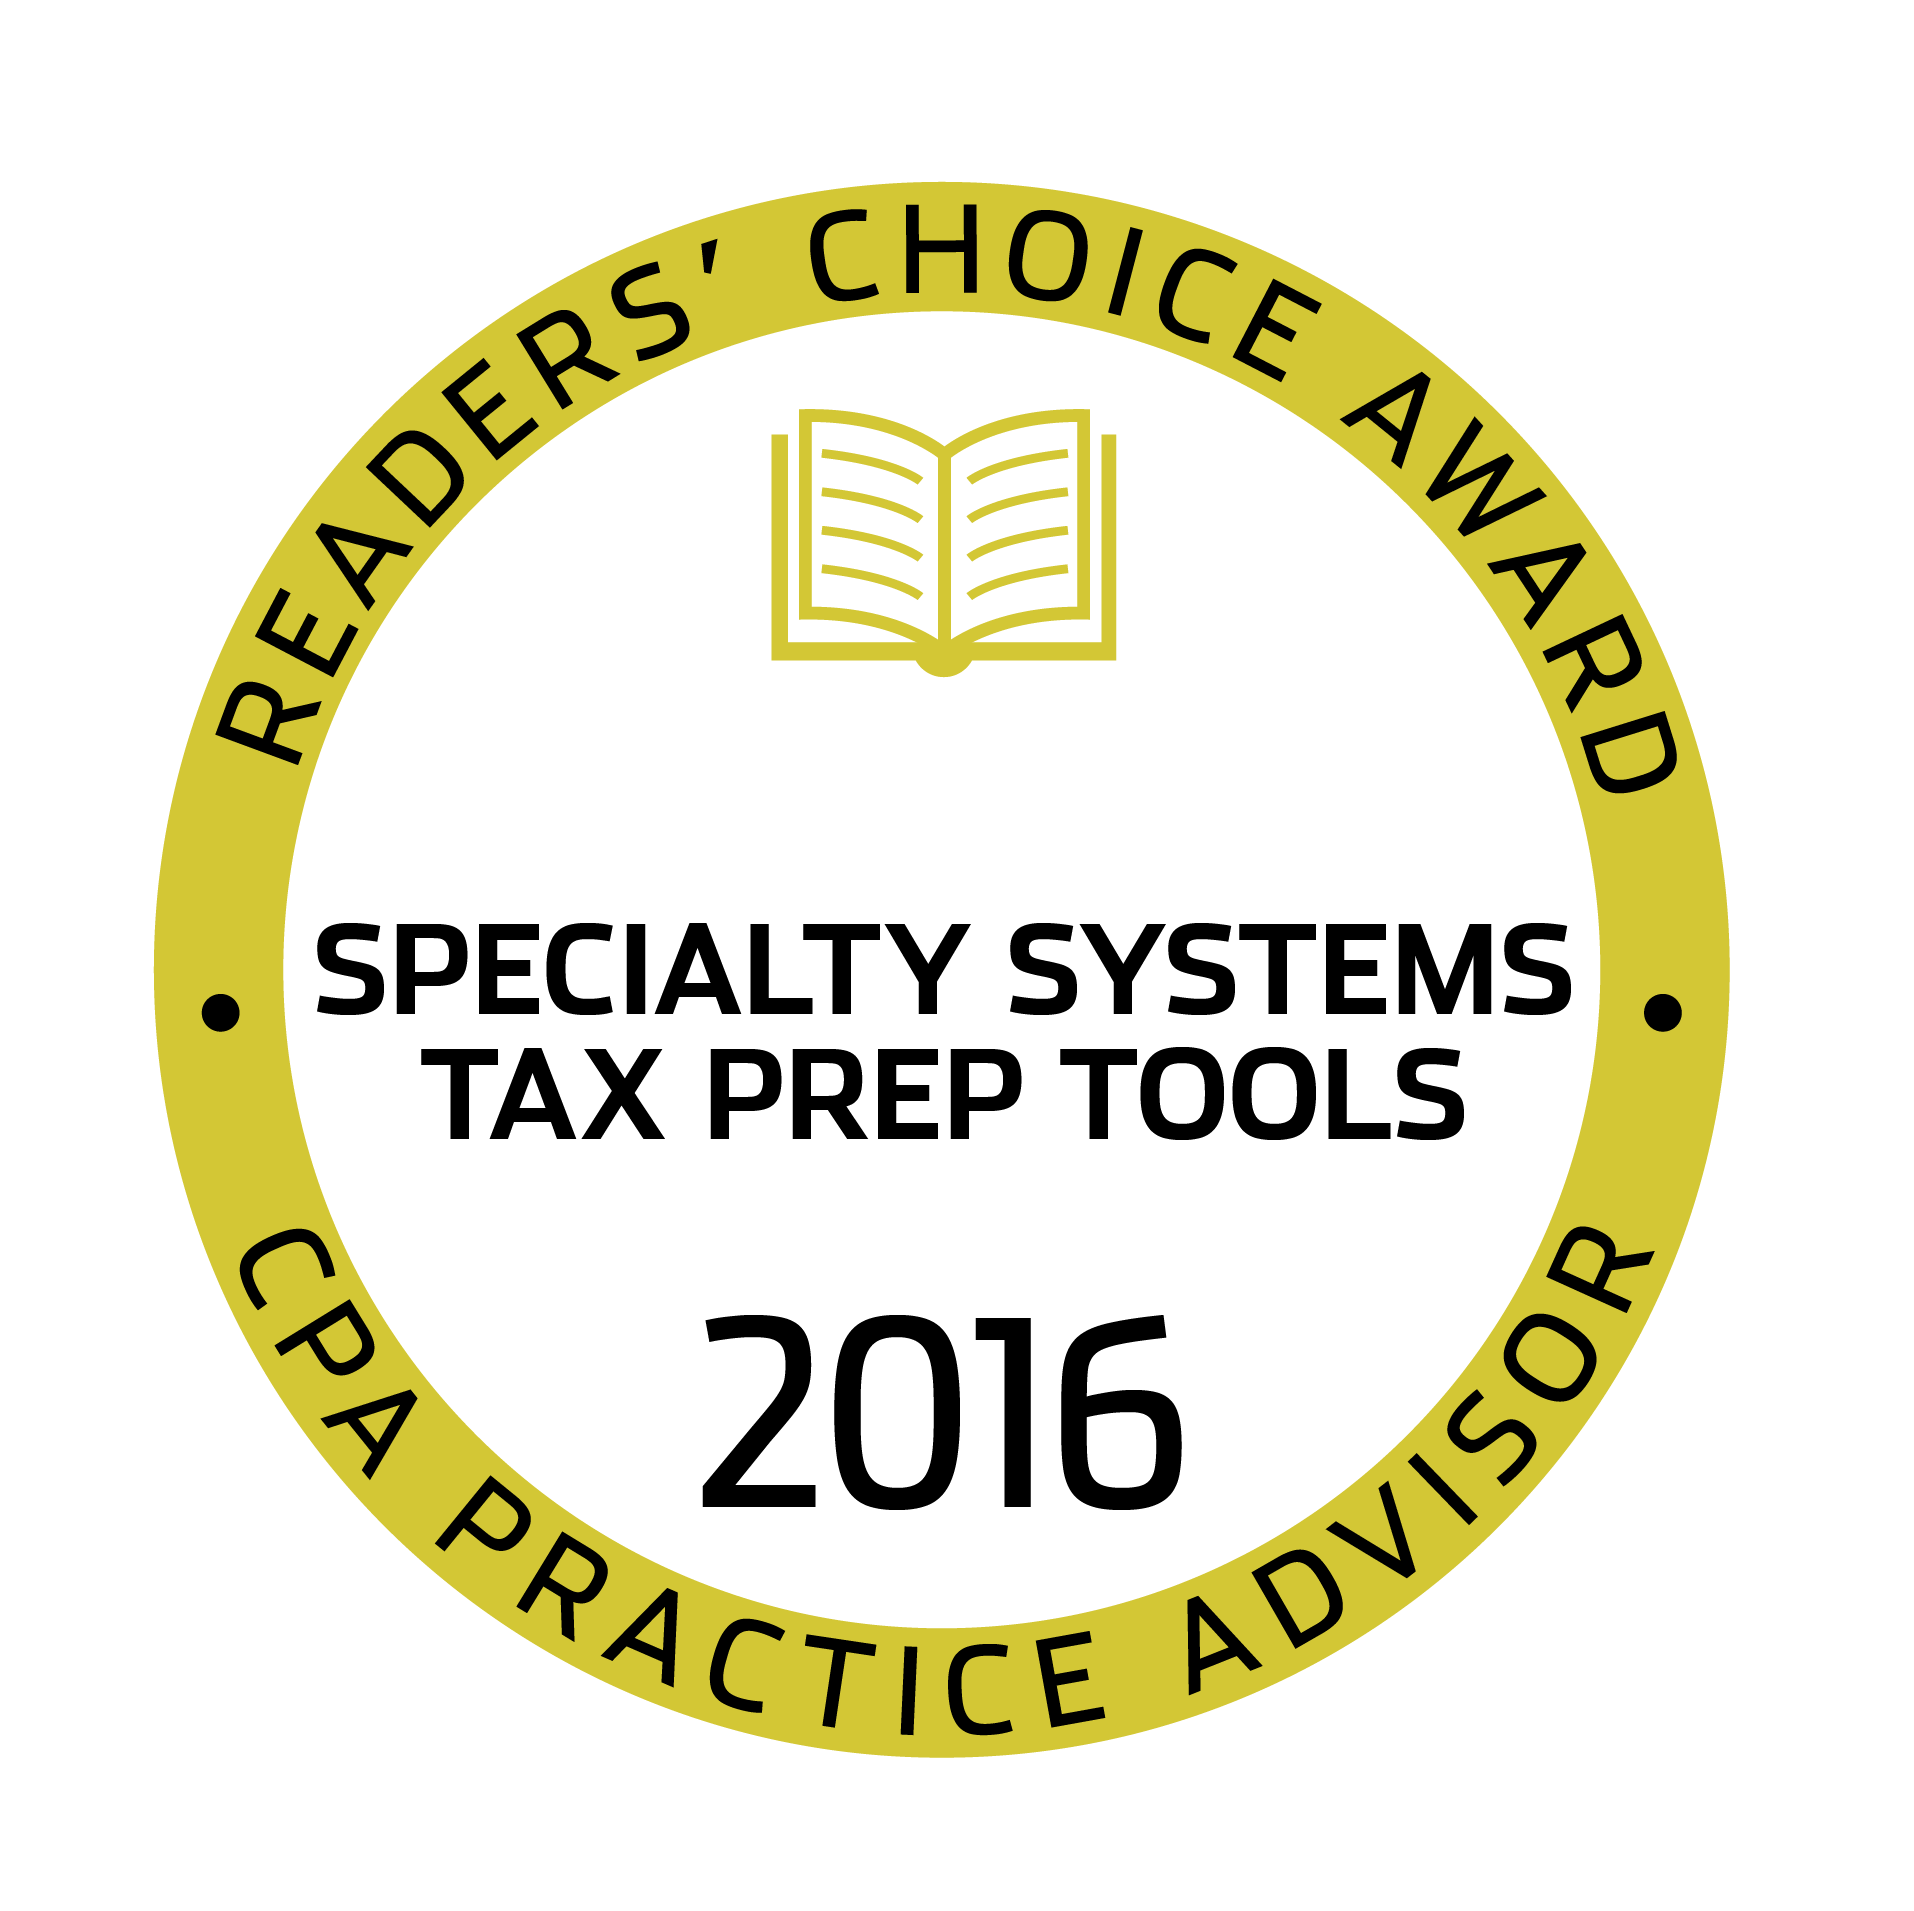 GWX-285 2016 Readers' Choice Award Graphics1